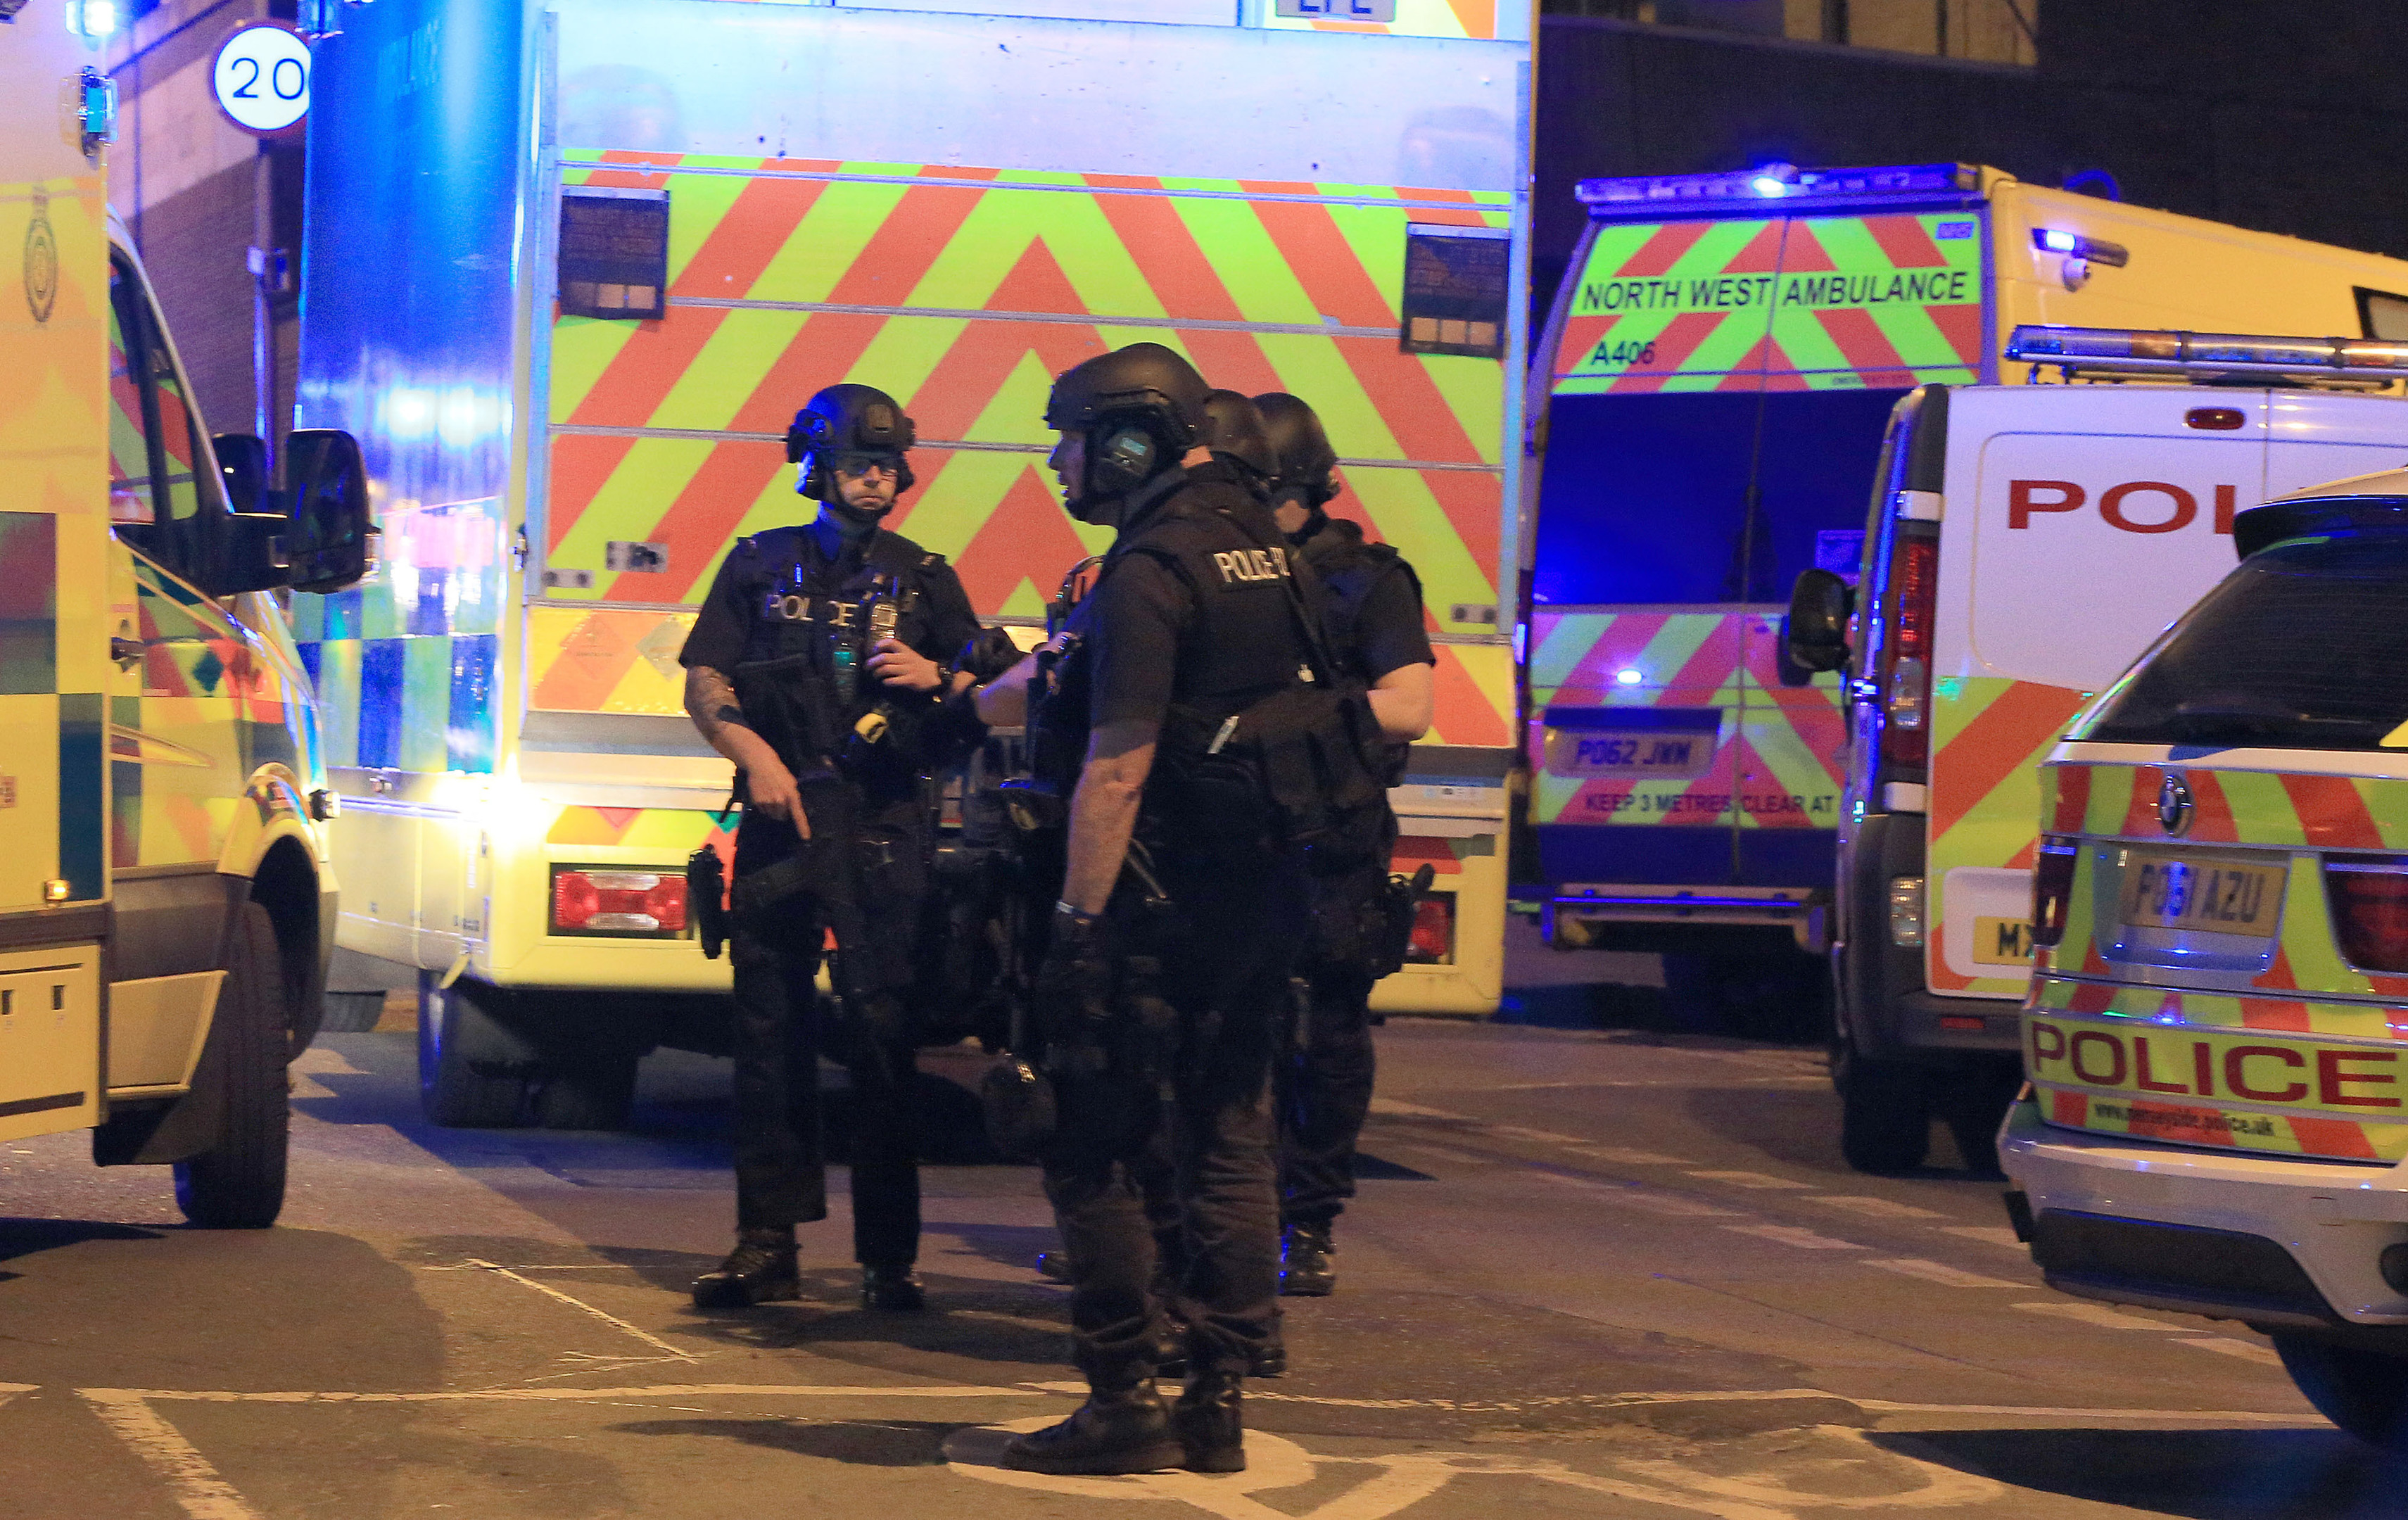 Armed police at the scene on Tuesday night